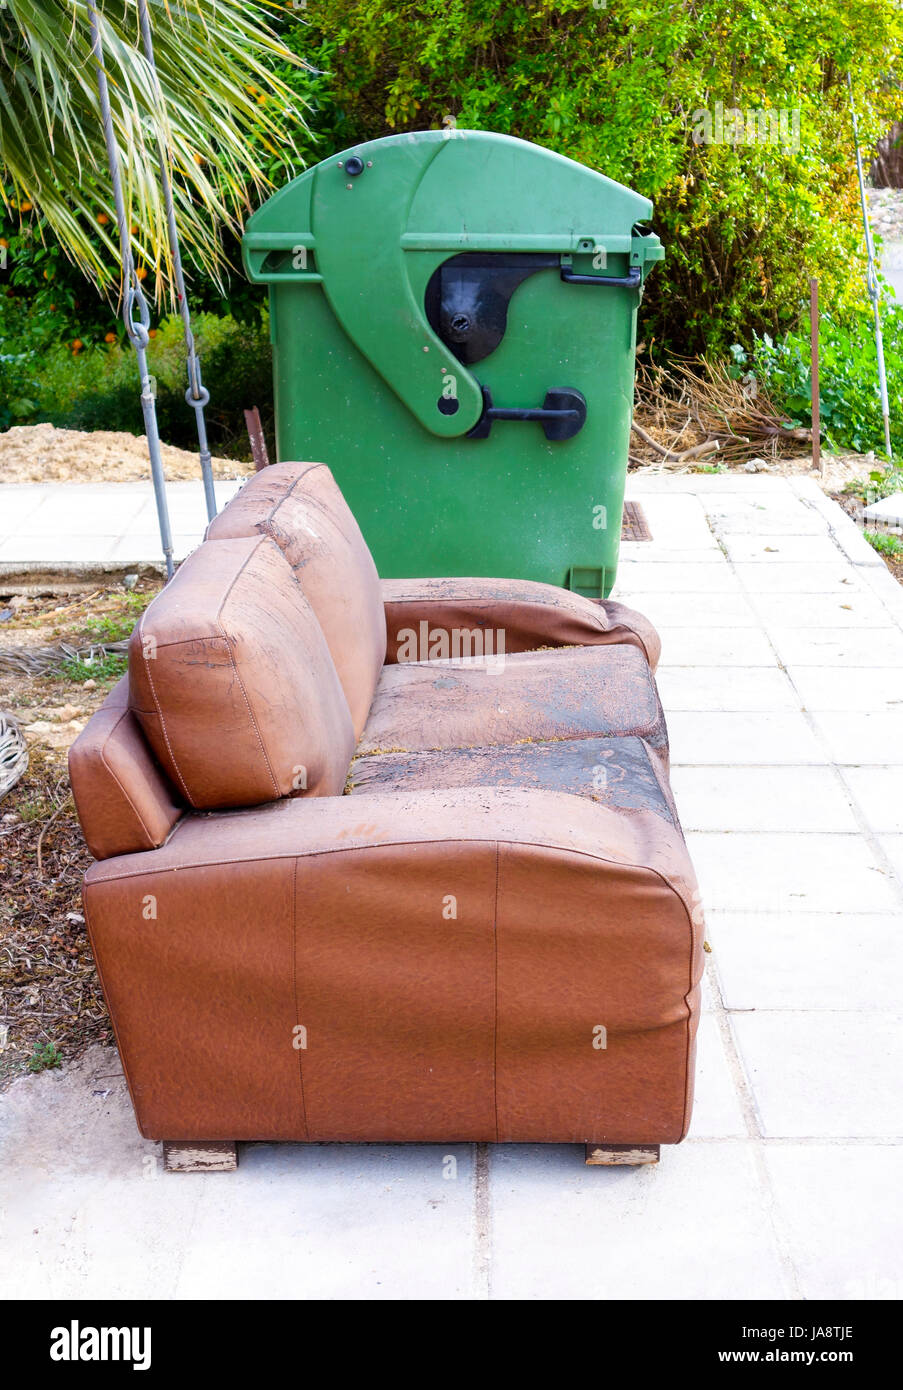 Old sofa near green trash can in the street . - Stock Image